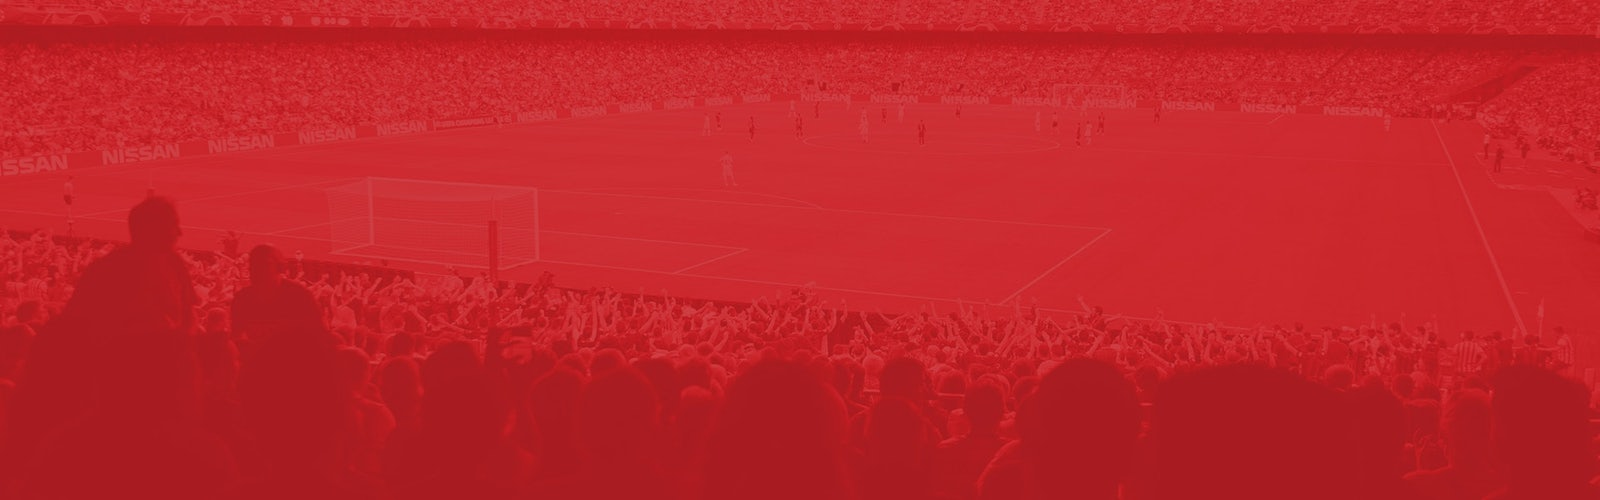 Header image red football fans